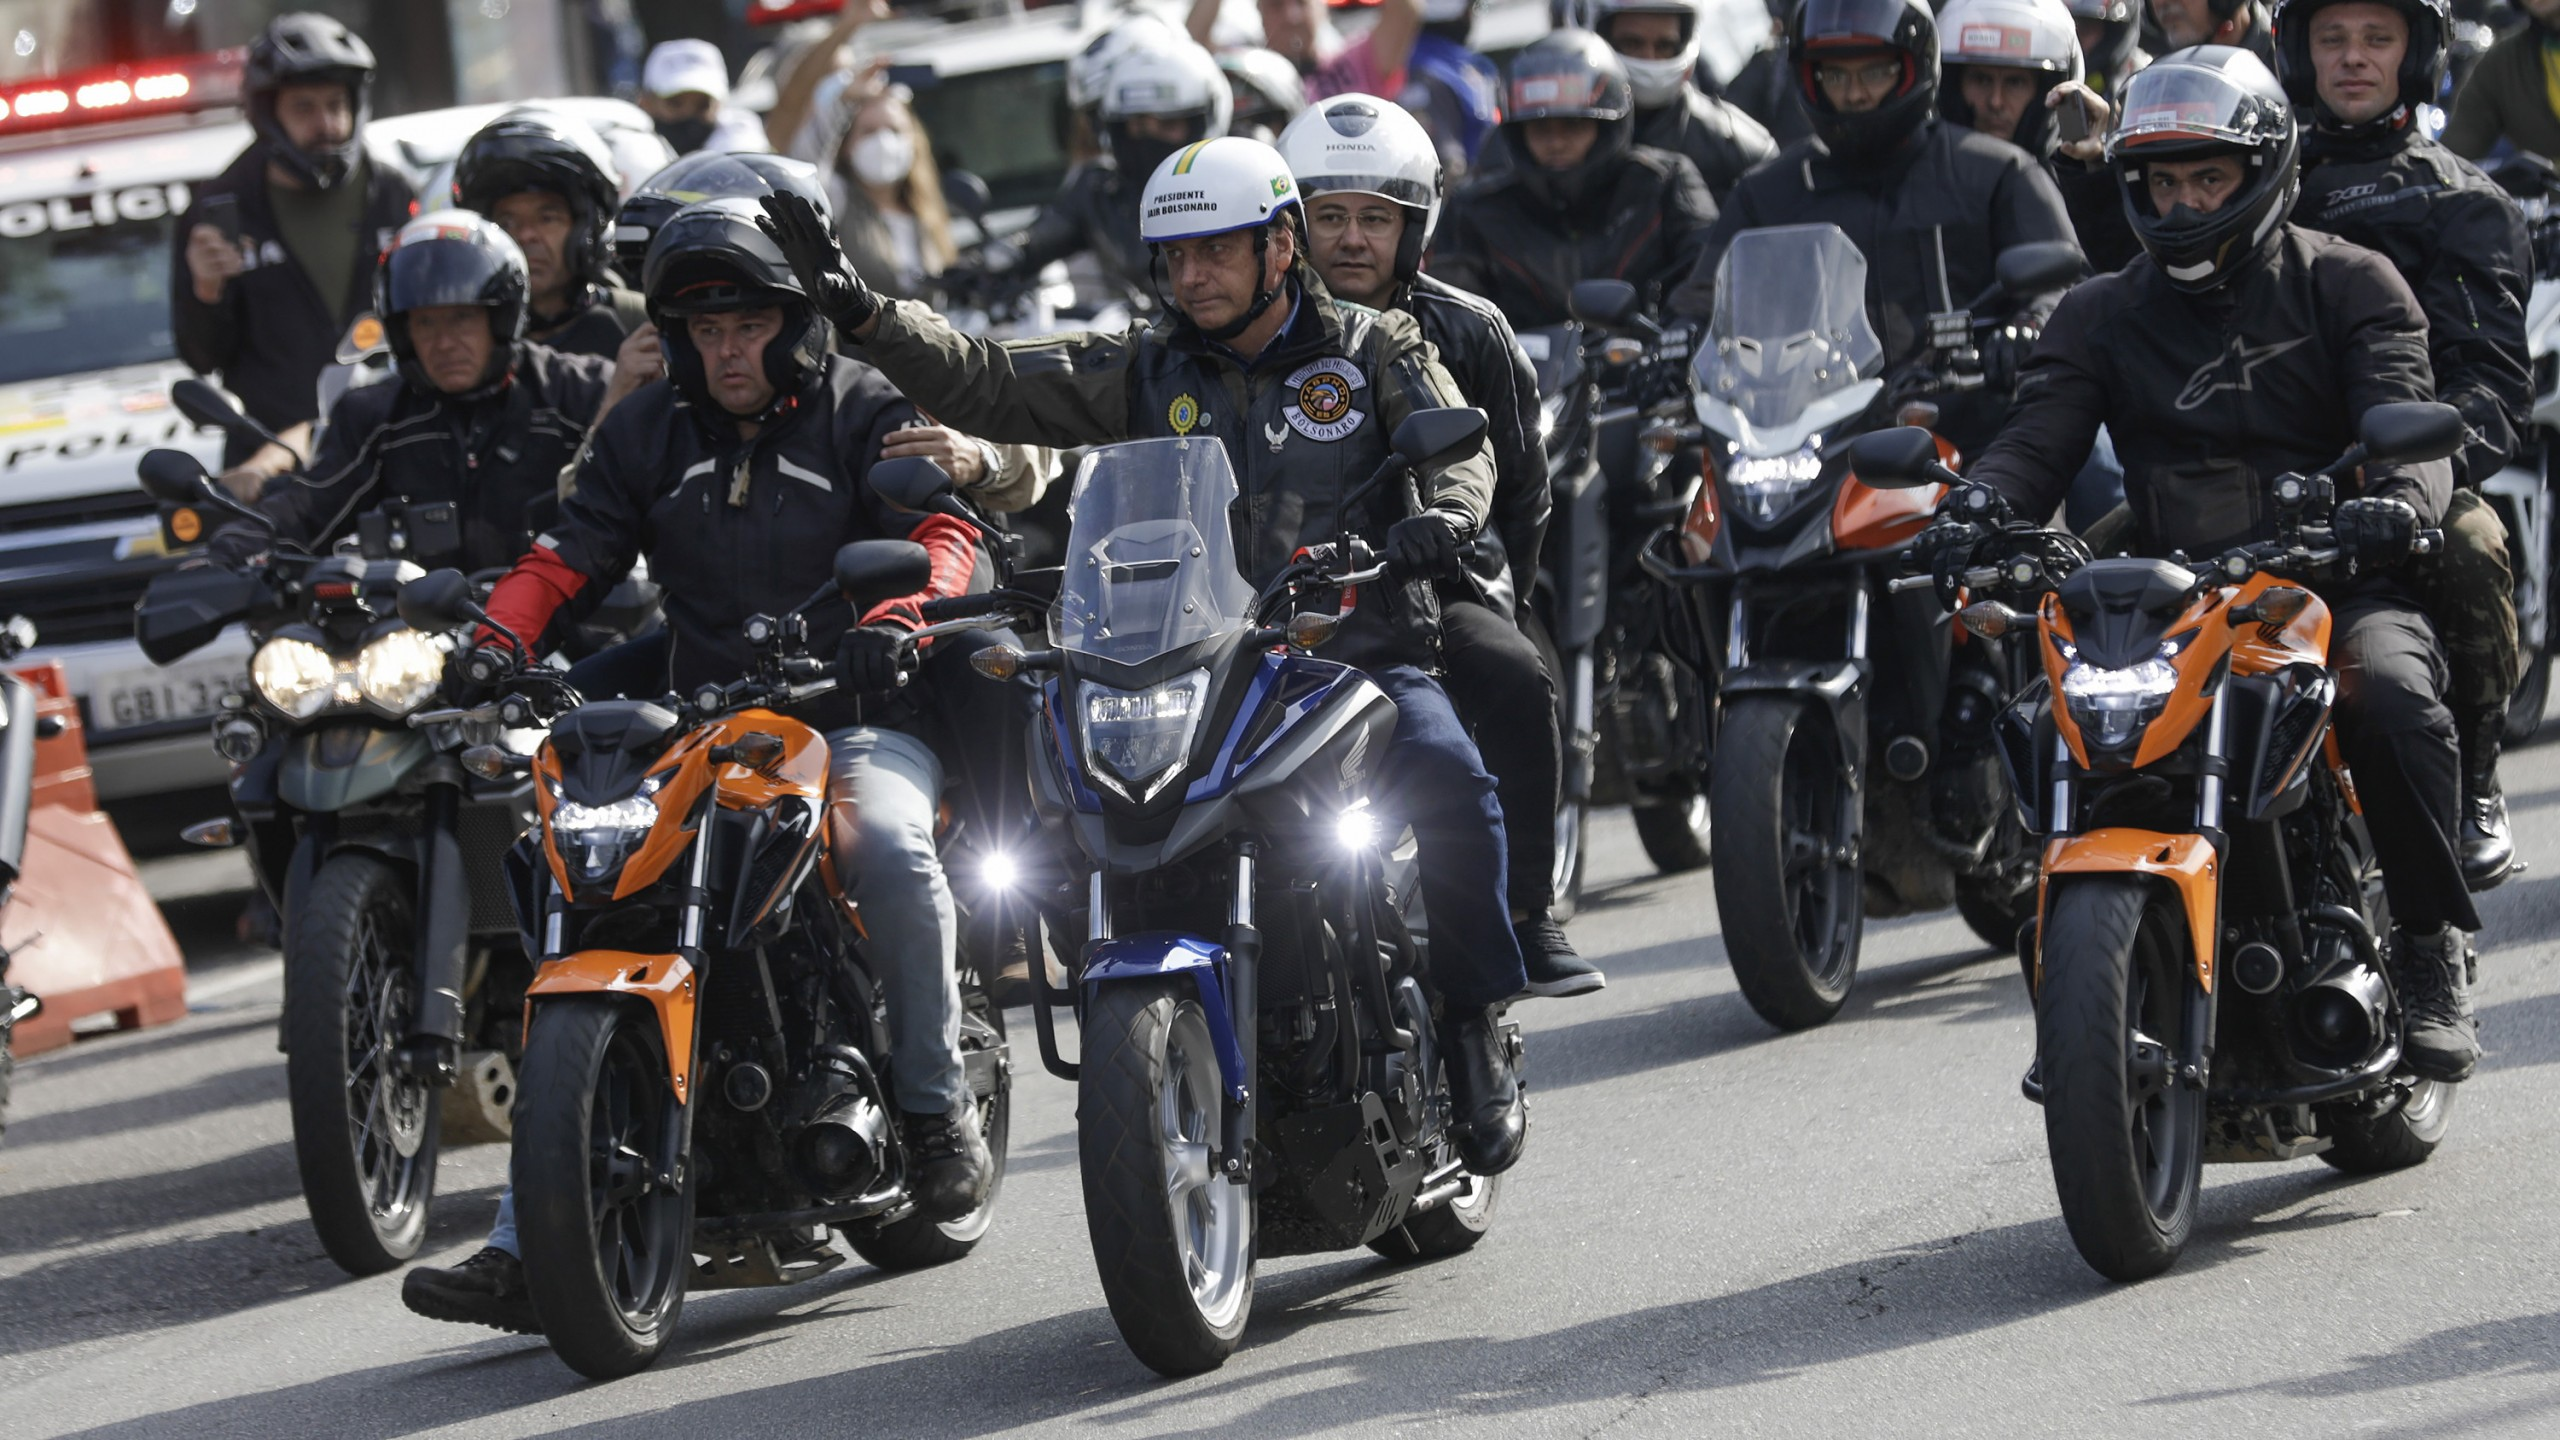 Brazil's president fined for flouting mask at mass motorcycle rally - WISH-TV